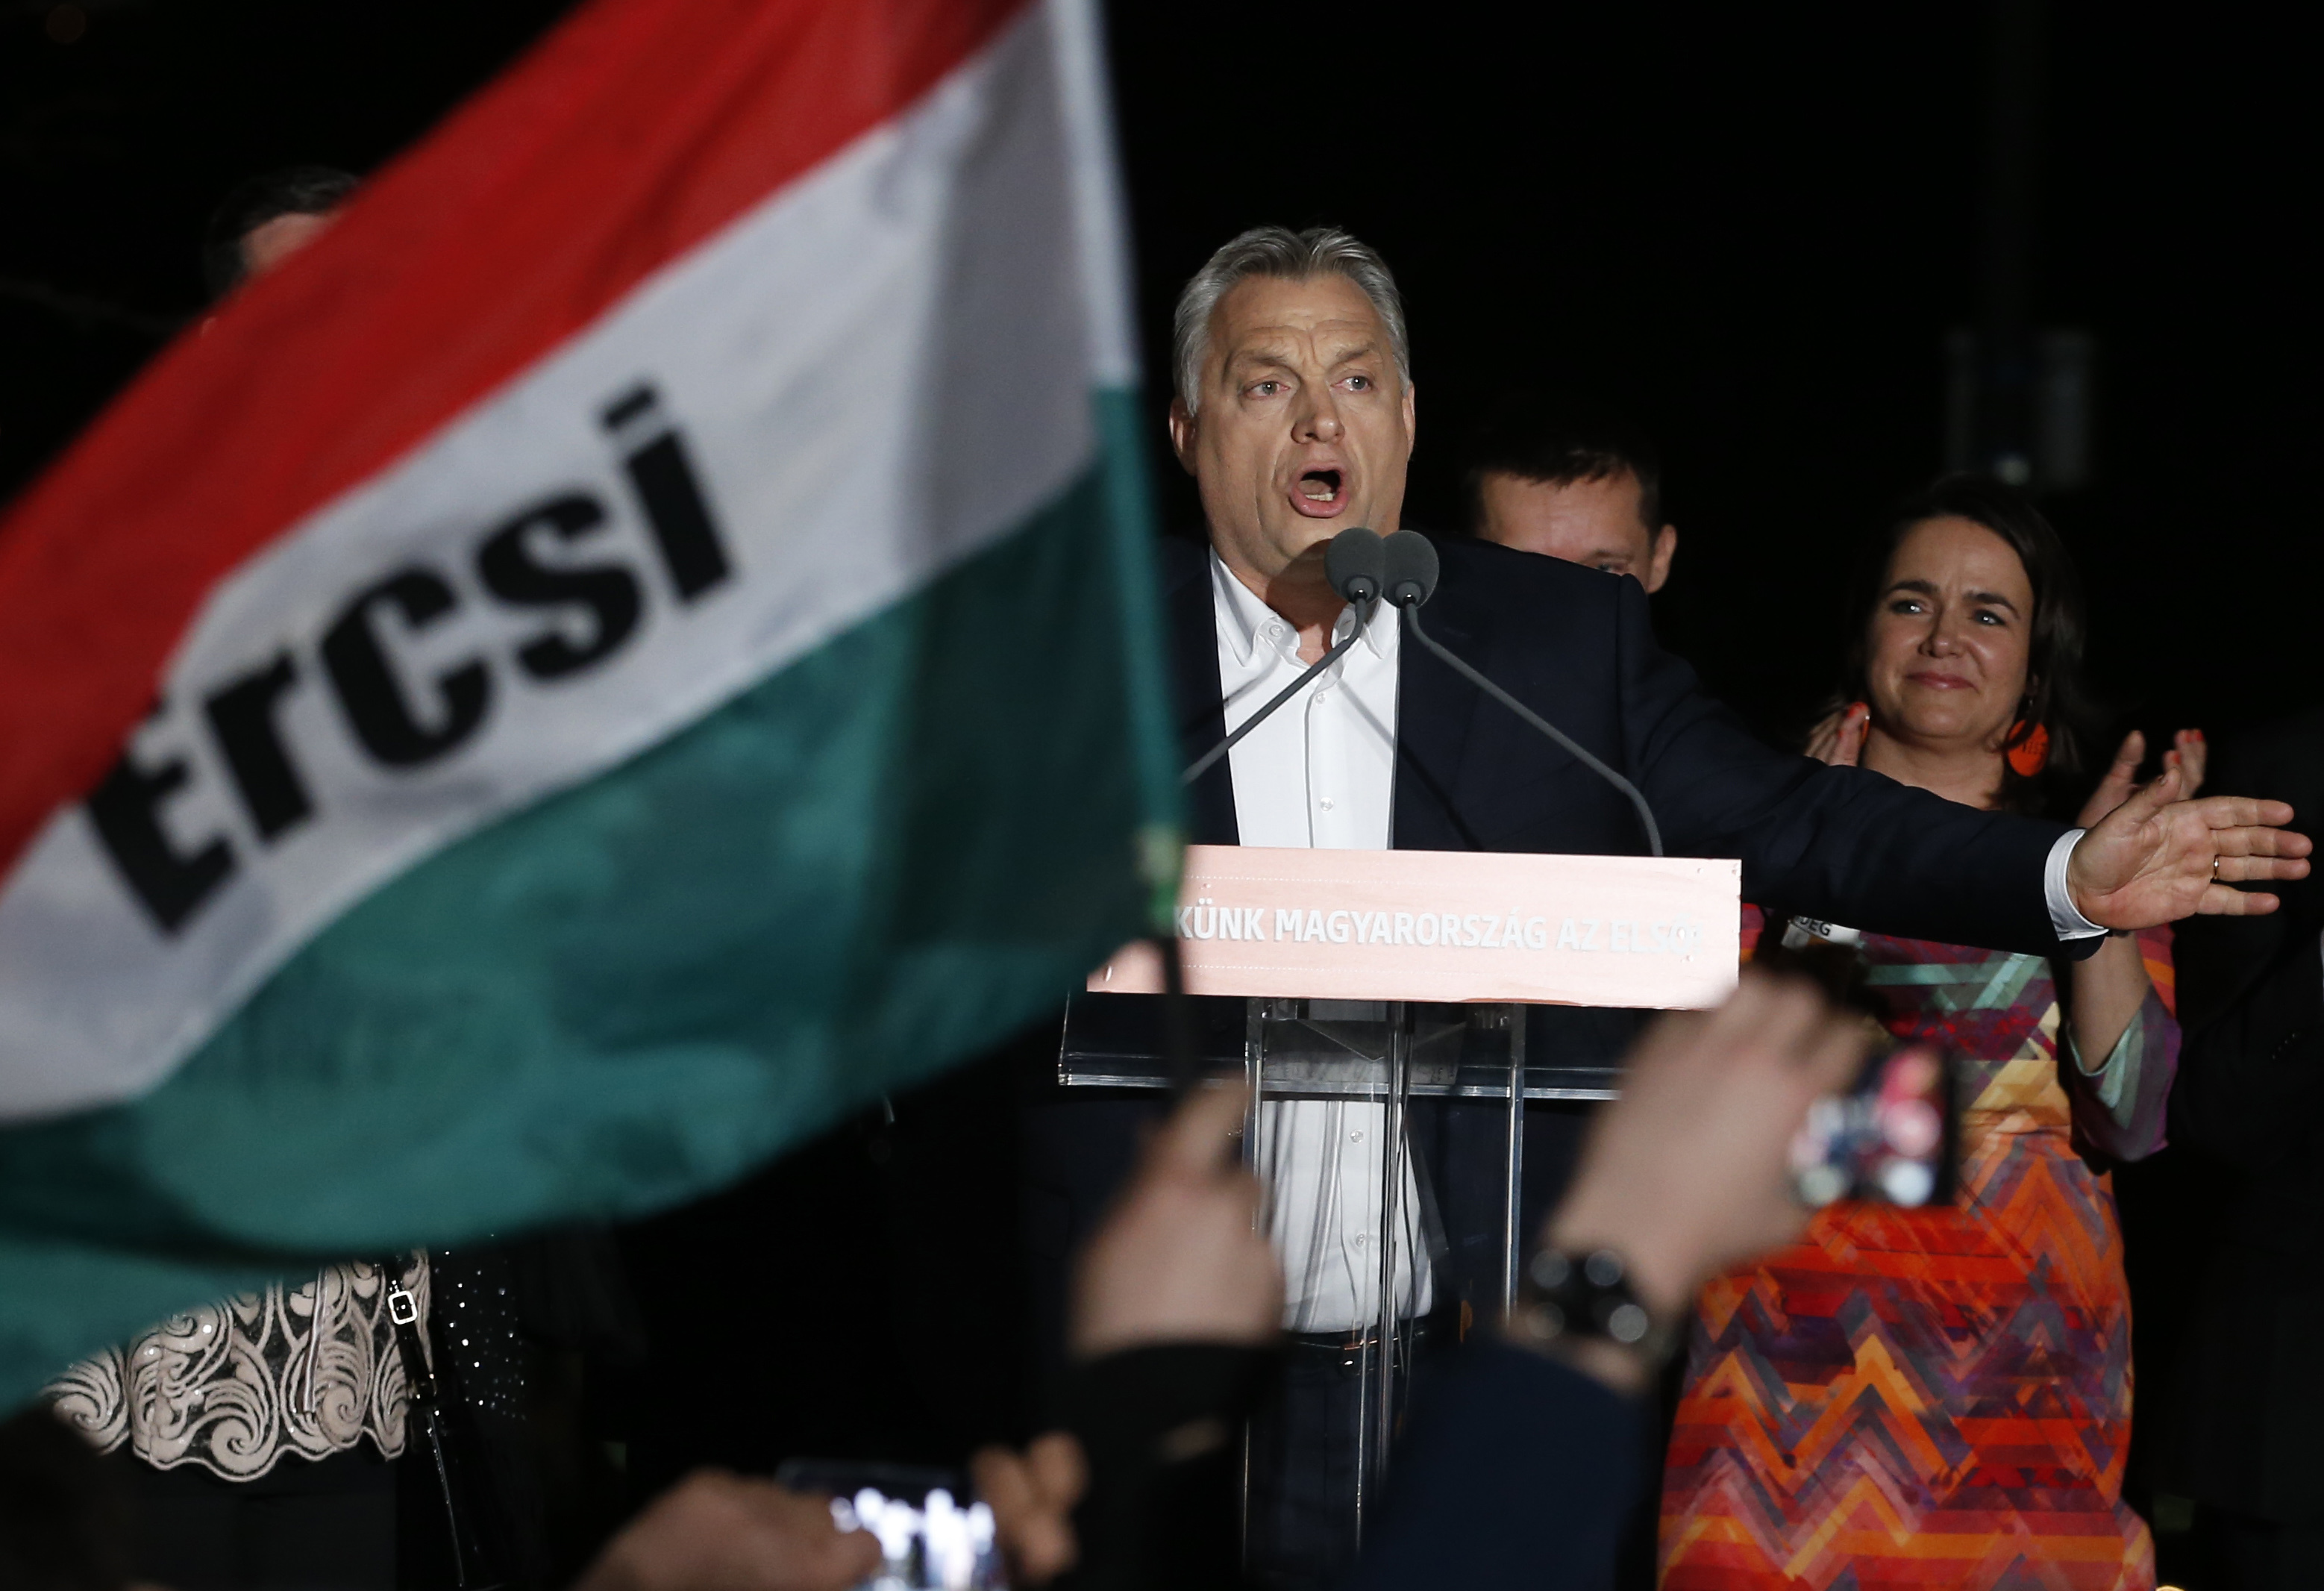 Hungarian Prime Minister Viktor Orban addresses supporters in Budapest, Hungary as preliminary voting results saw him win a third consecutive term and his Fidesz party seize on a parliamentary supermajority on April 8, 2018.